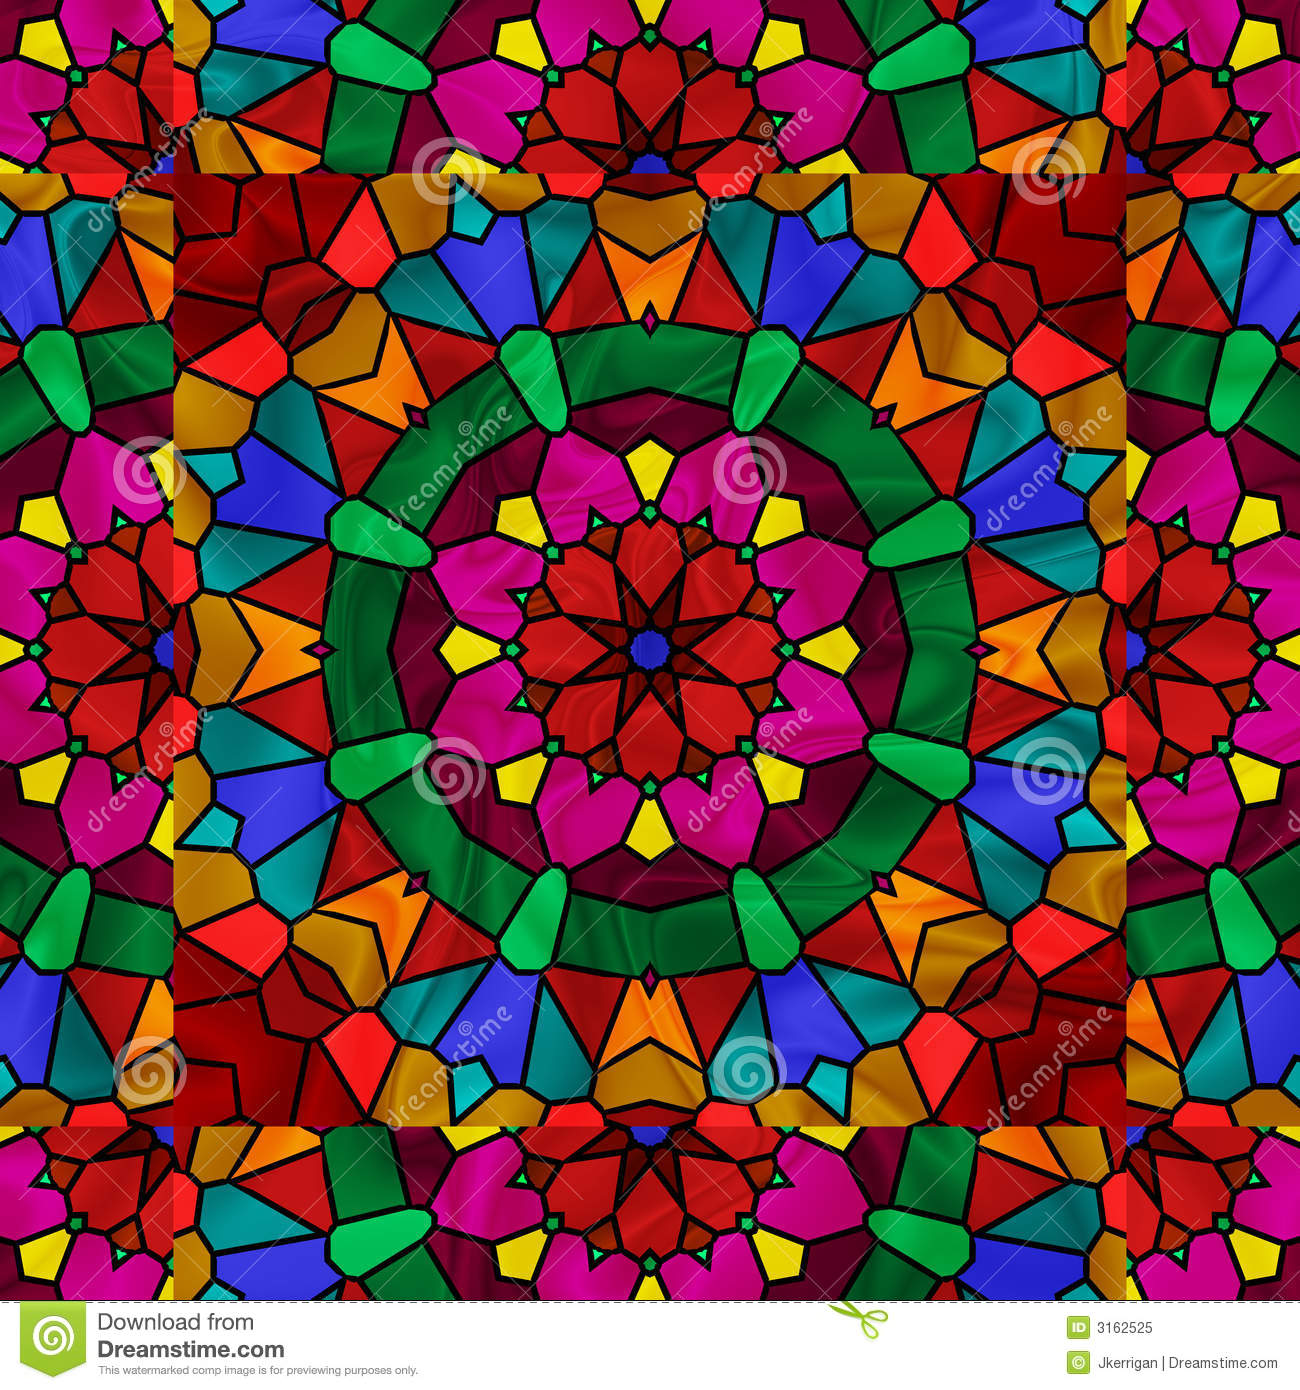 Blue glass window texture stained glass window texture - Kaleidoscope Royalty Free Stock Photo Image 3162525